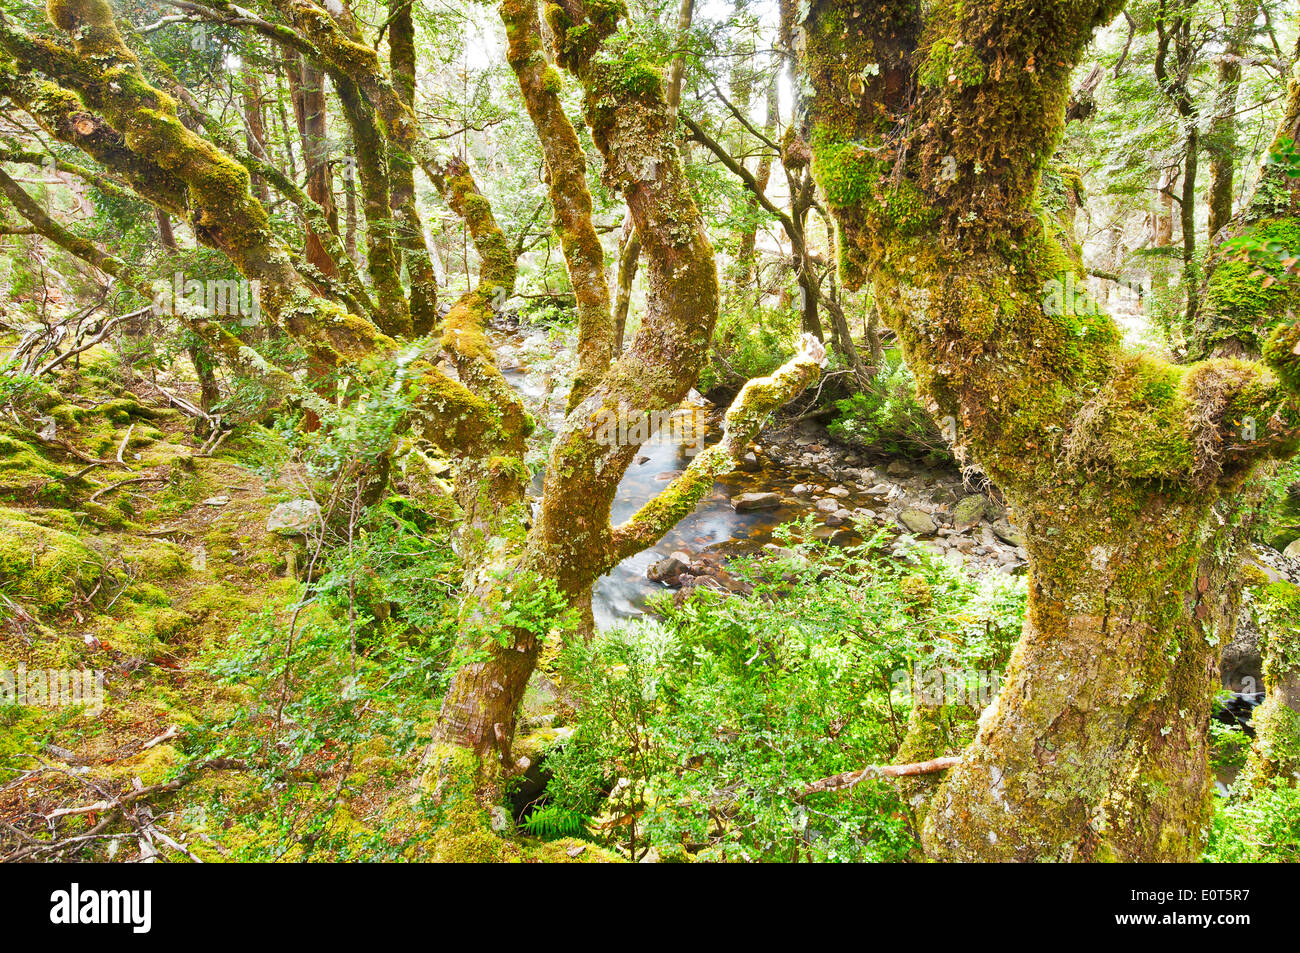 Enchanted Forest at Cradle Mountain. - Stock Image